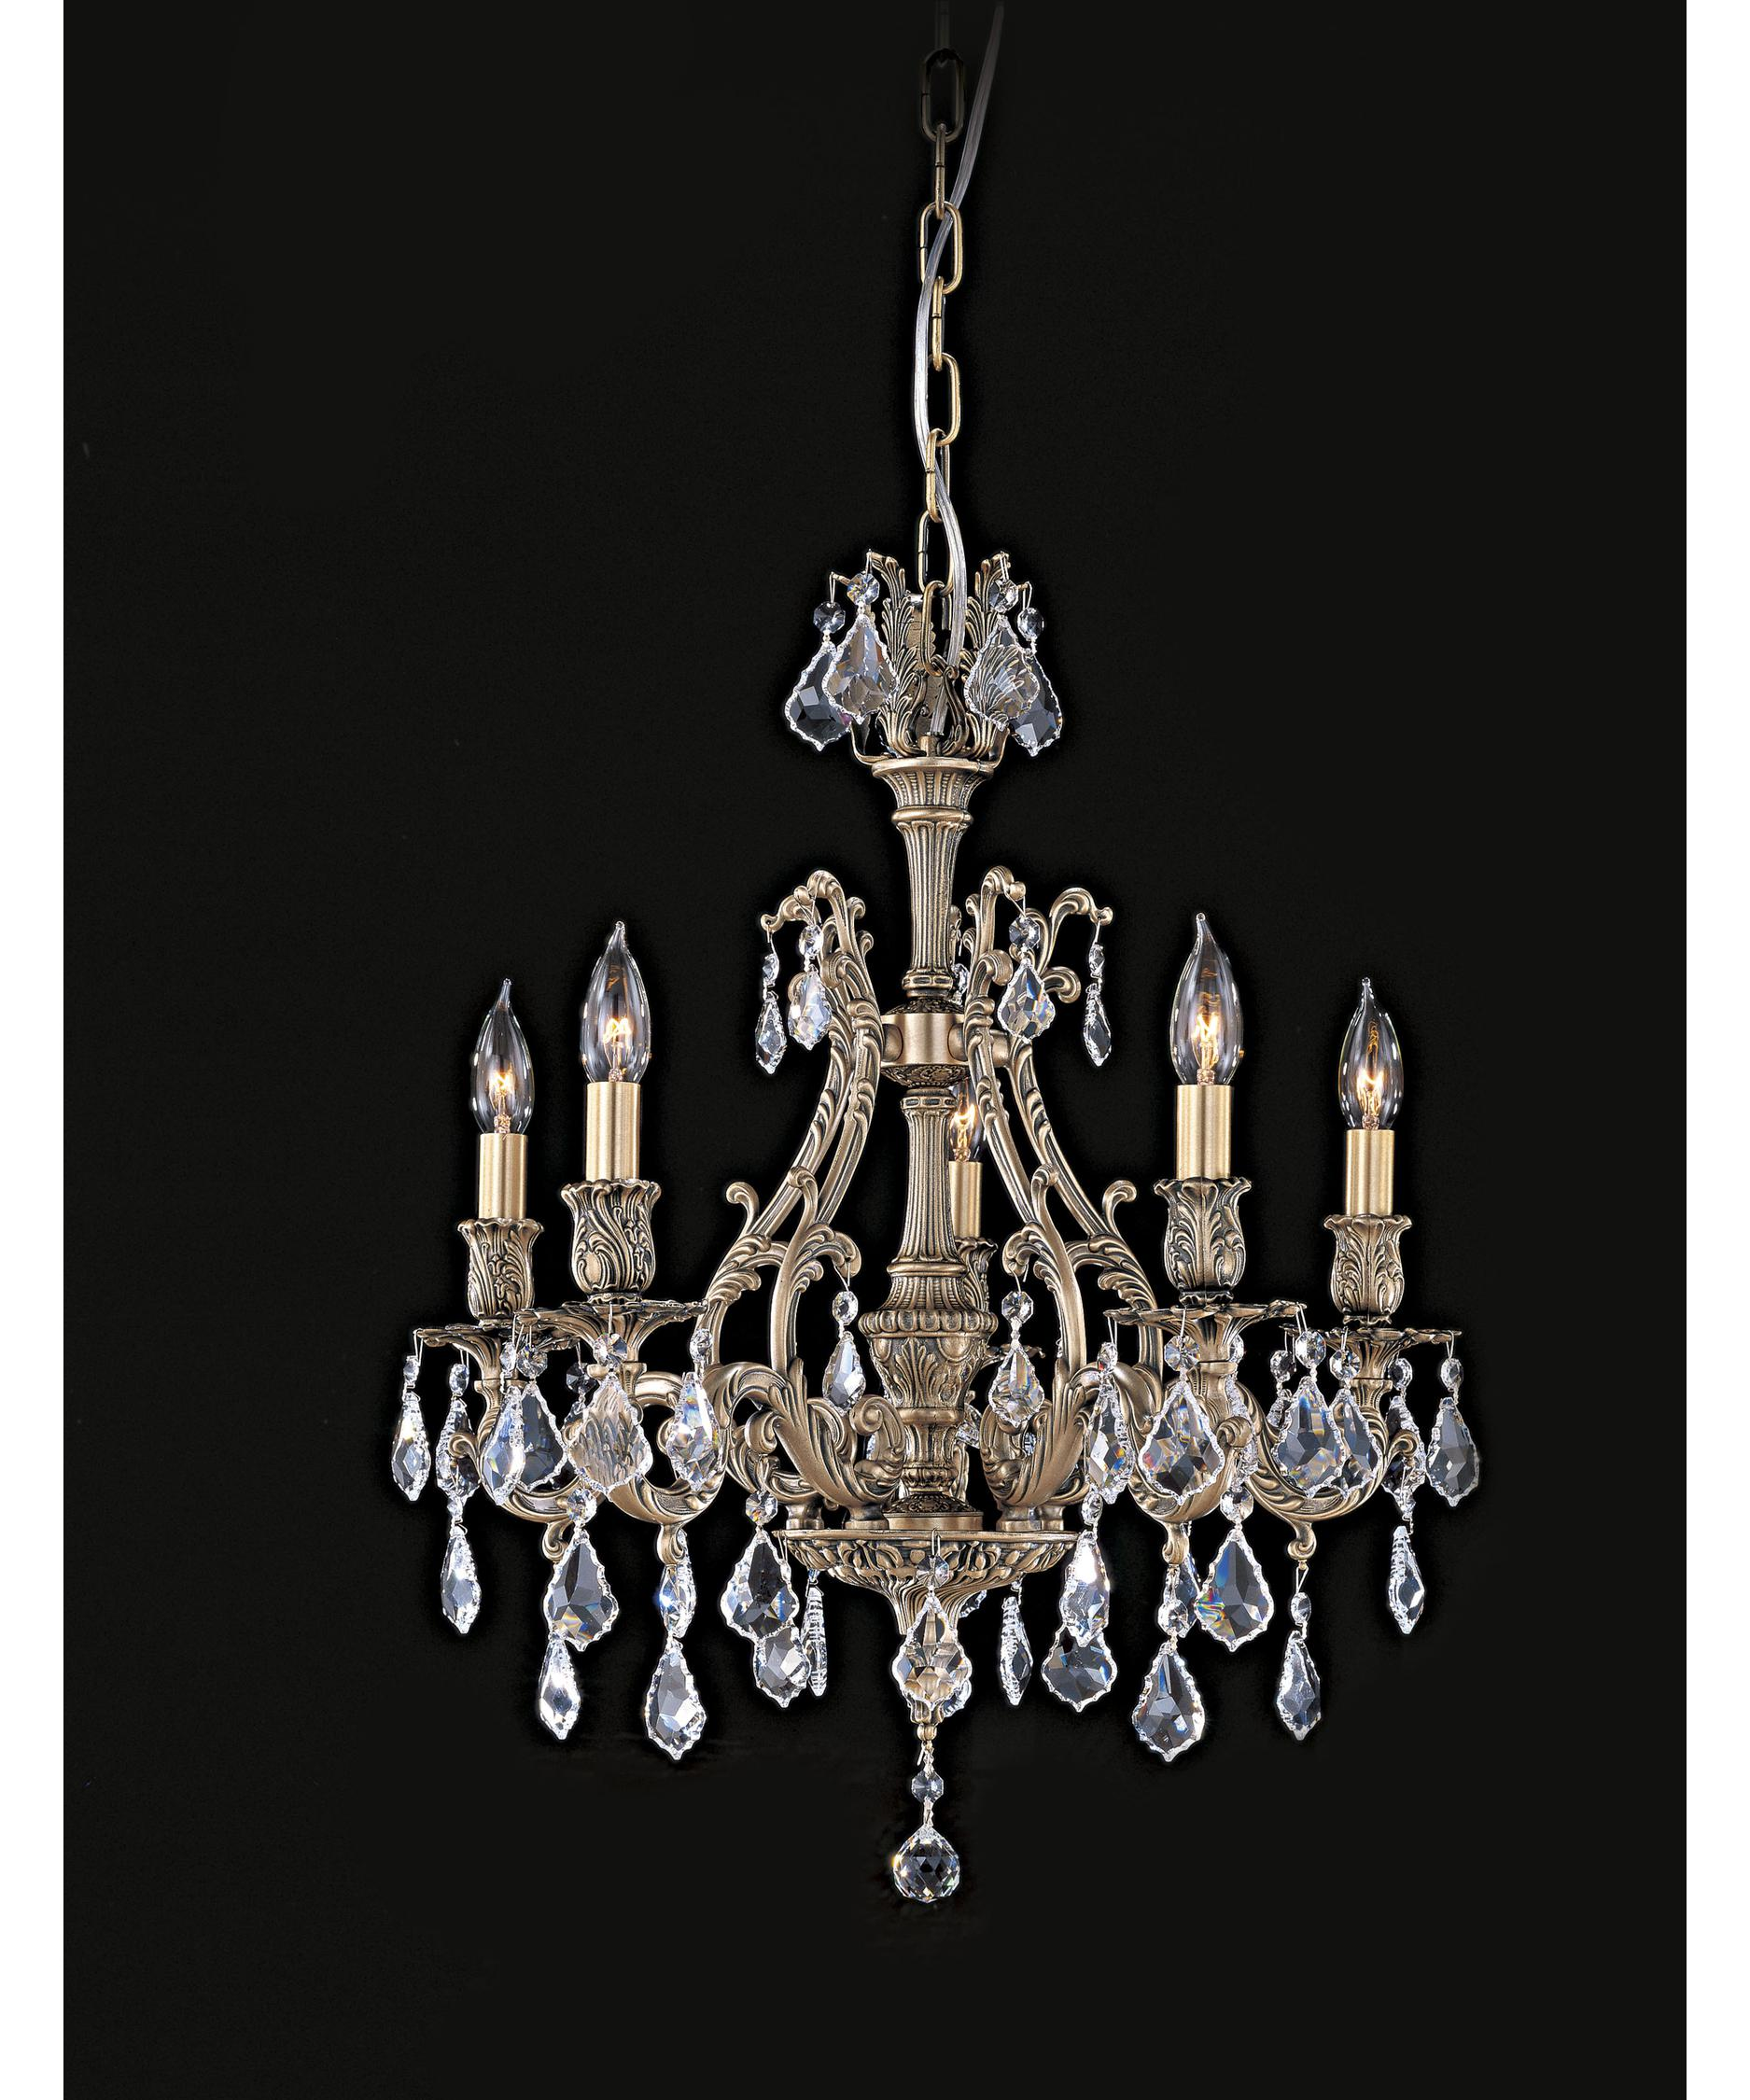 American Brass and Crystal Chateau 20 Inch Wide 5 Light Mini – American Brass and Crystal Chandeliers